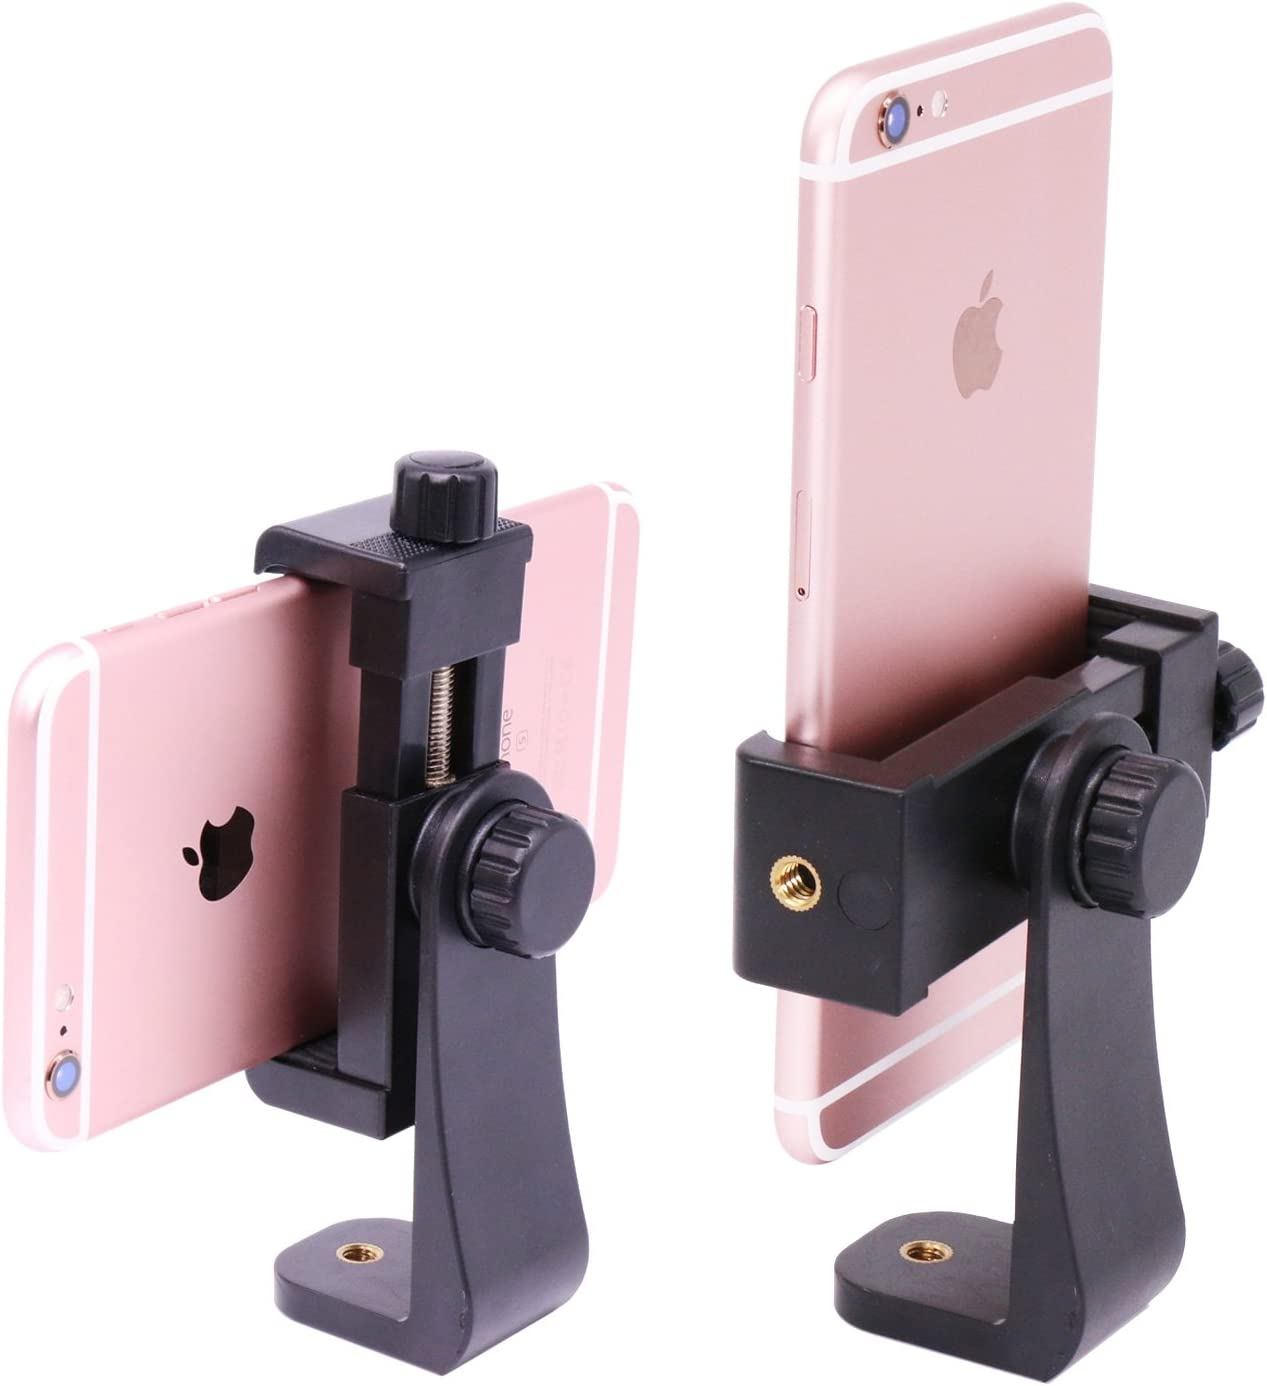 Compatible with iPhone Samsung Galaxy Smartphone Rotate Vertical Horizontal Adjustable Phone Holder Clamp Tripod Phone Mount Adapter Holder